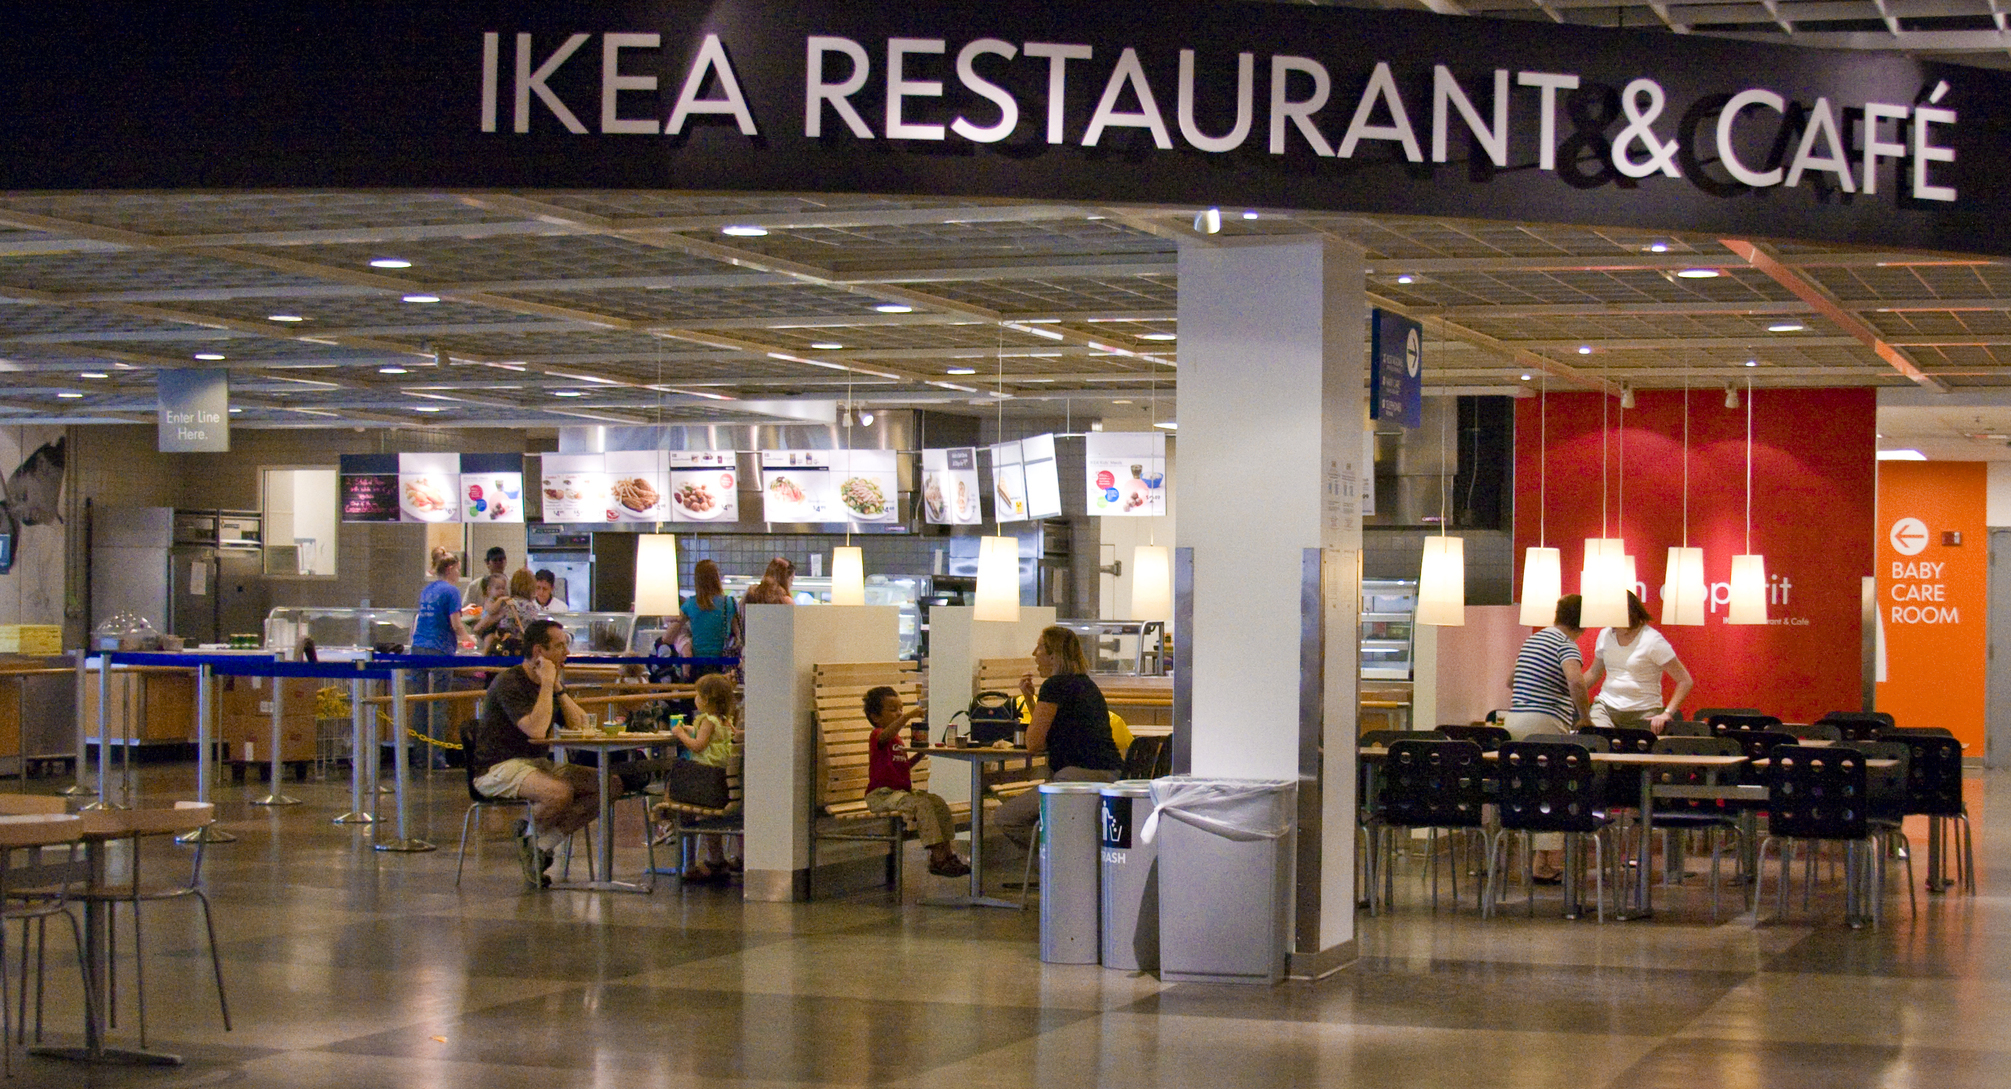 ikea restaurant. Black Bedroom Furniture Sets. Home Design Ideas